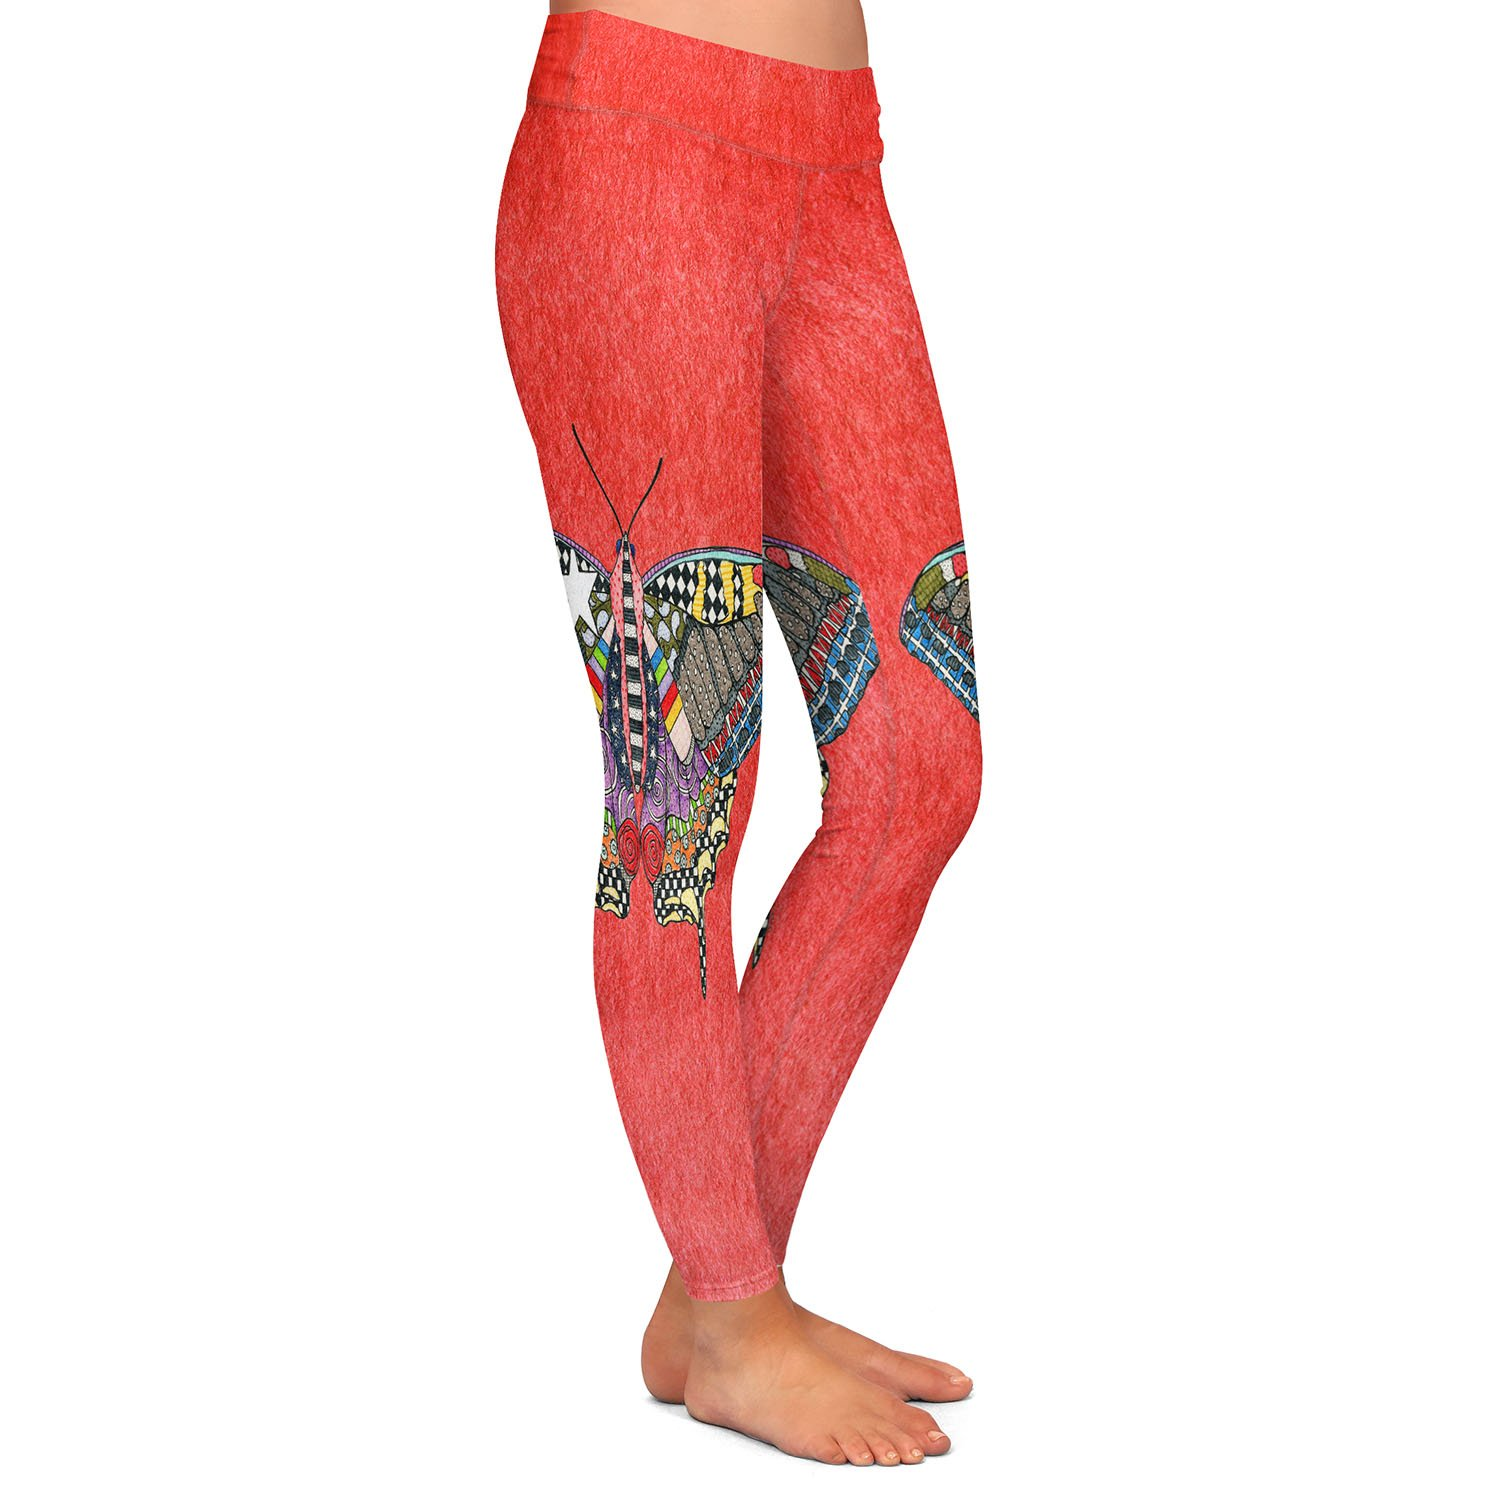 Athletic Yoga Leggings from DiaNoche Designs by Marley Ungaro Butterfly Watermelon